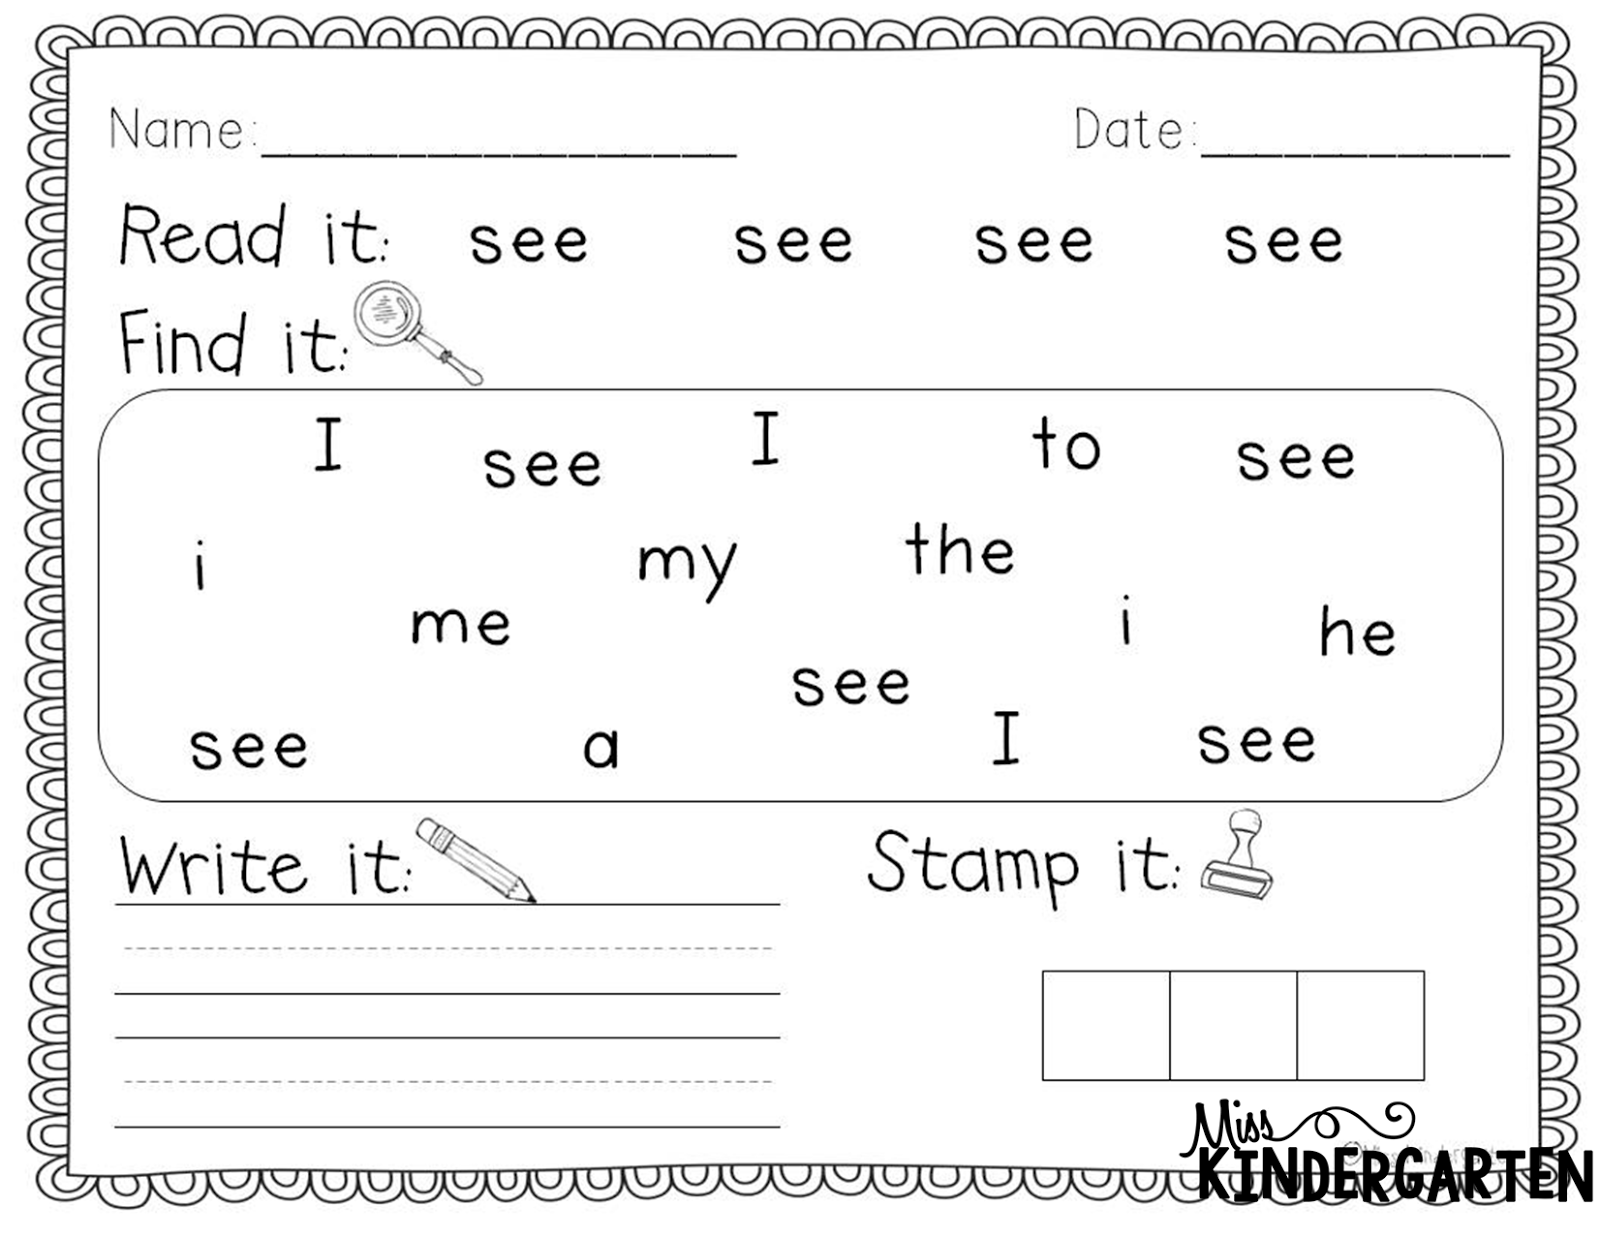 worksheet Preschool Sight Words sight word practice miss kindergarten httpwww teacherspayteachers comproductsight word